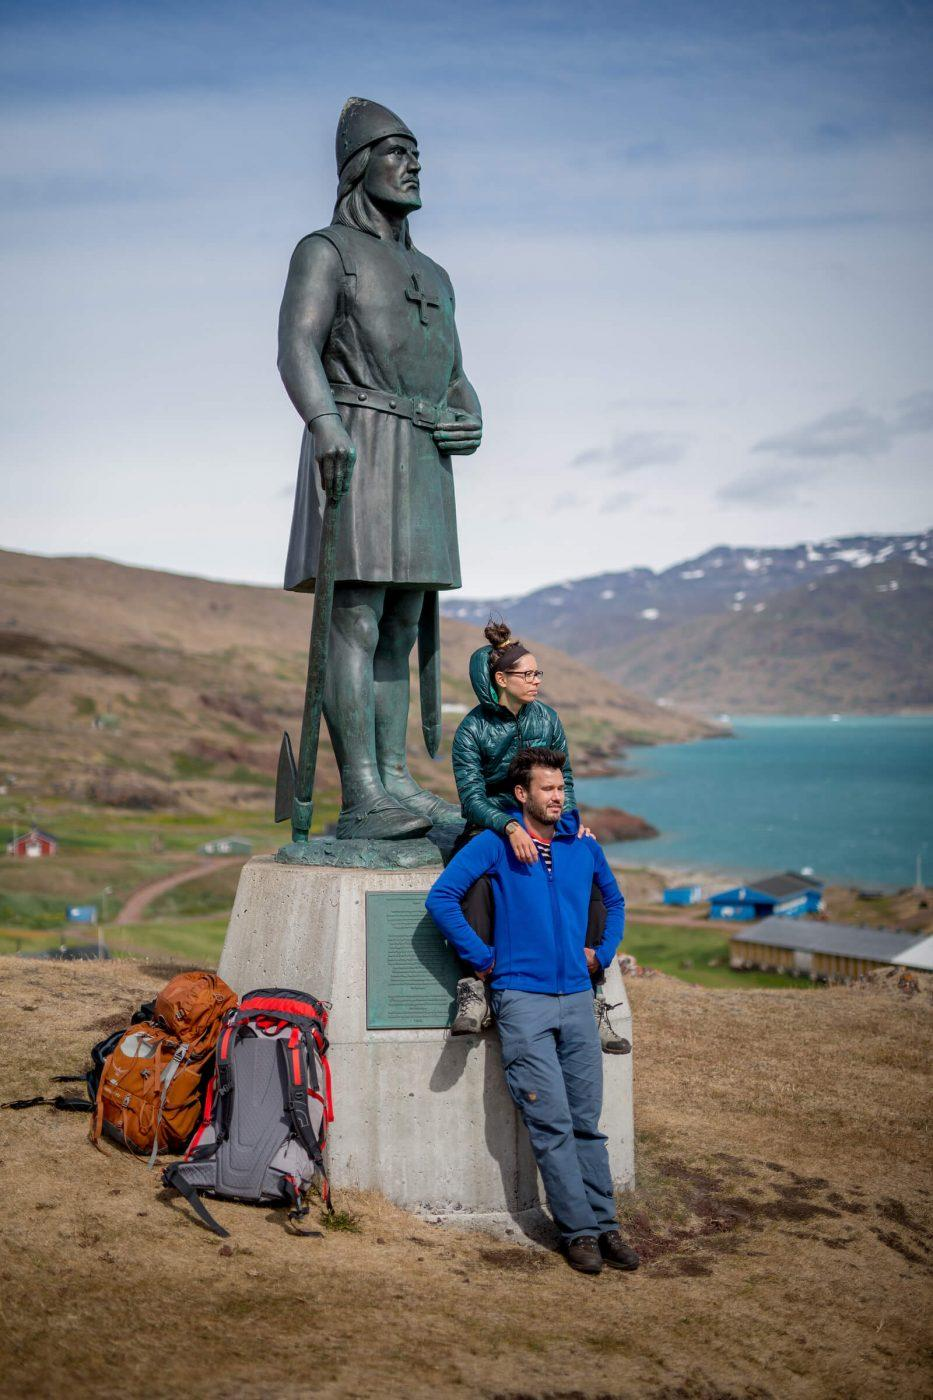 Two travelers at the Leif Ericson statue in Qassiarsuk in South Greenland. By Mads Pihl